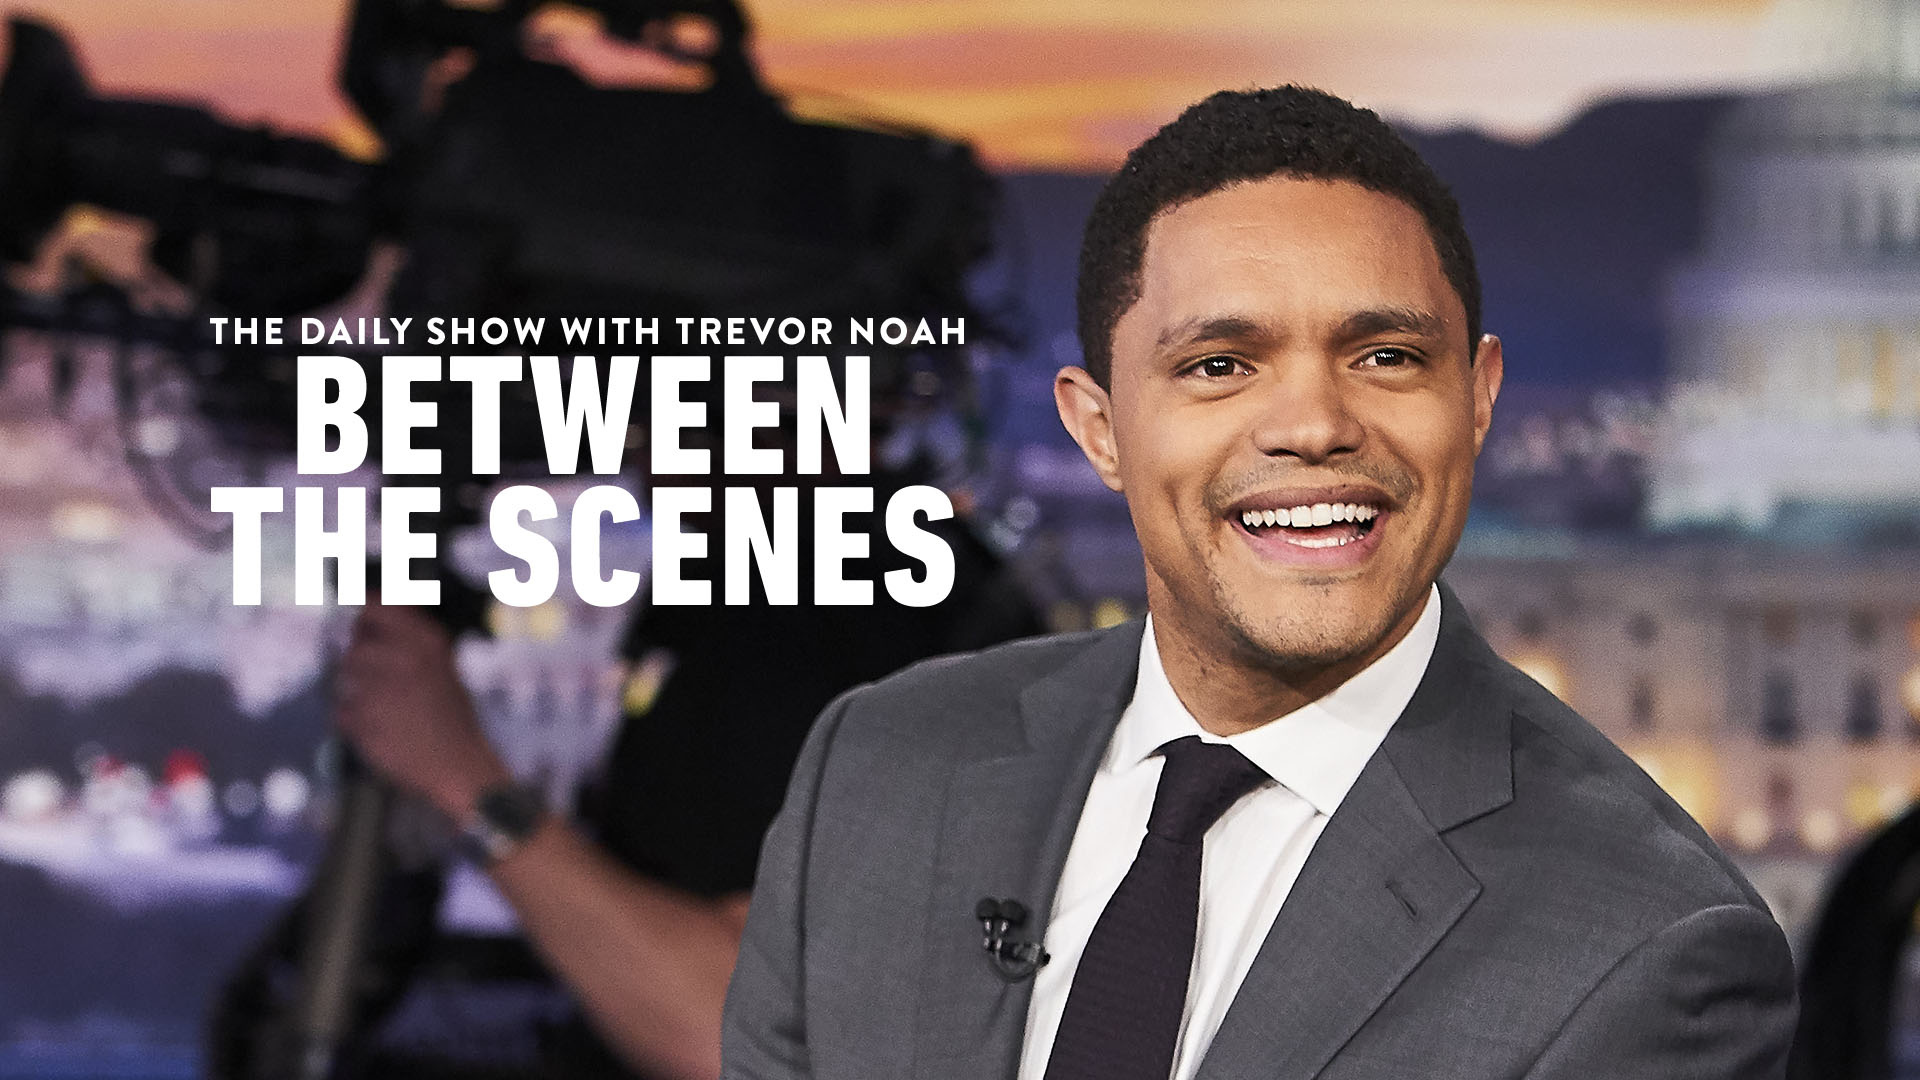 Thumbnail for The Daily Show with Trevor Noah - Between the Scenes